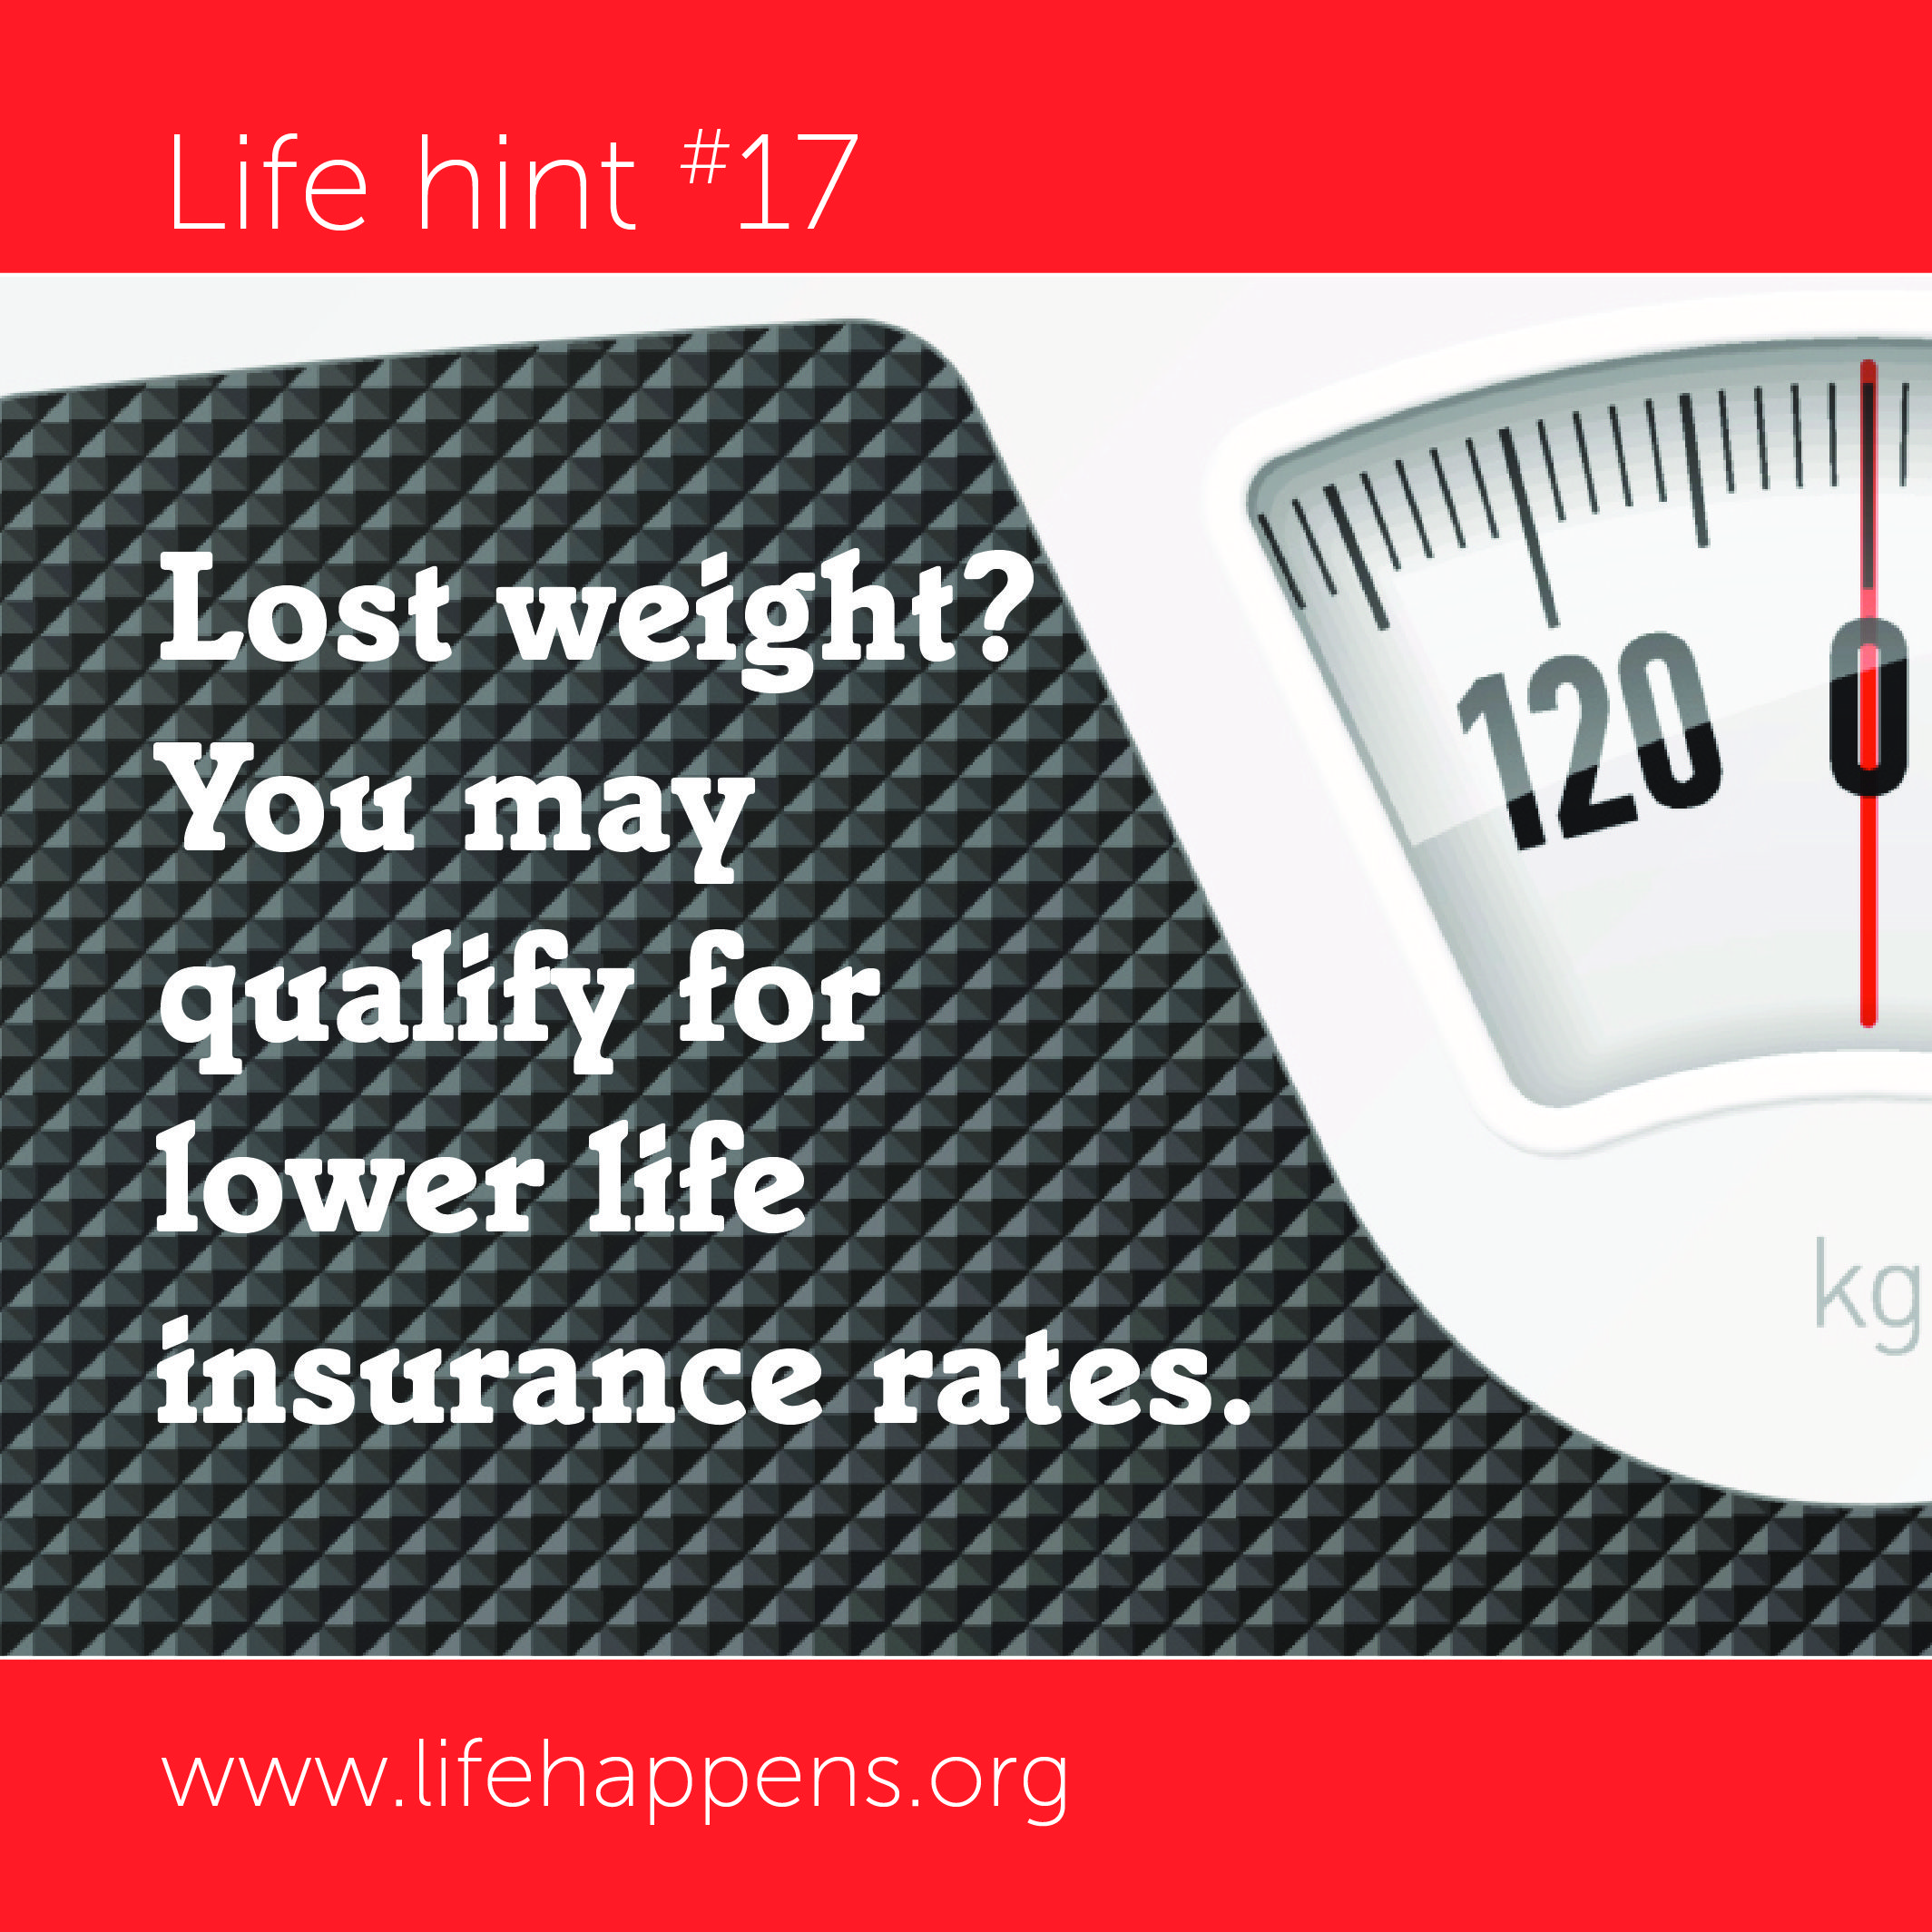 Car Insurance Quotes Allstate Life Hint #17 Lost Weight You May Qualify For Lower Life Insurance